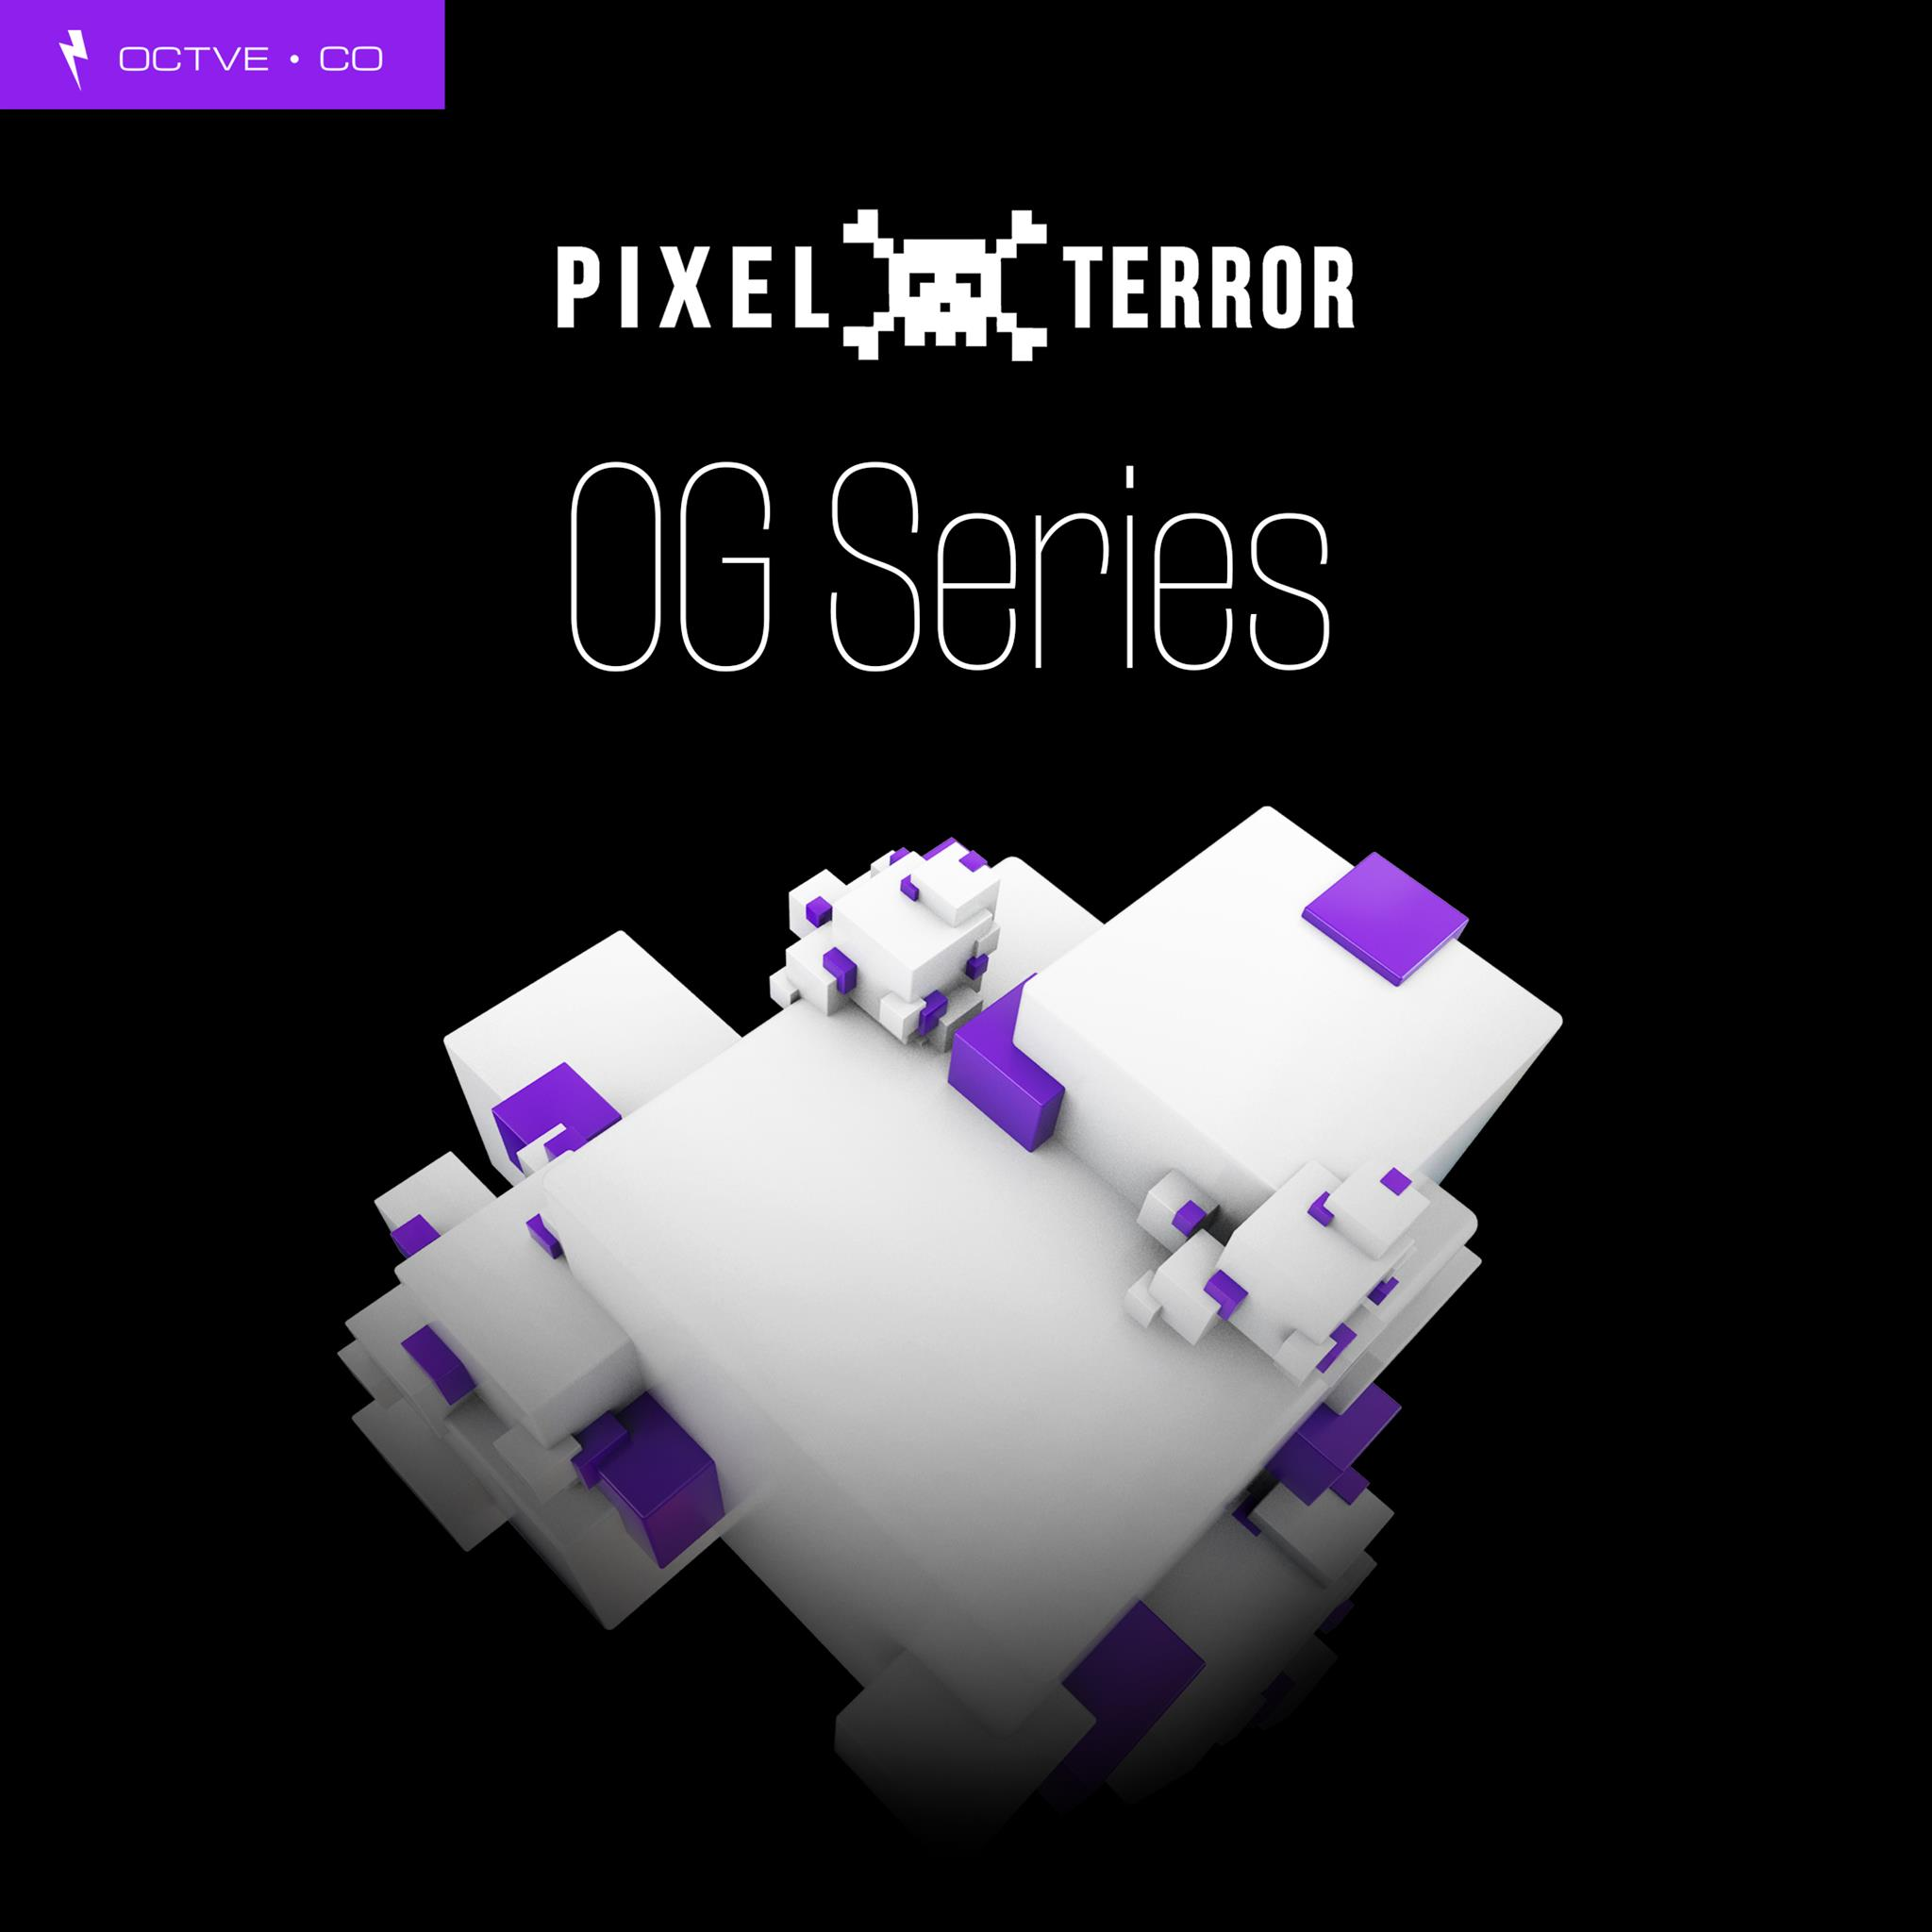 OG Series: Pixel Terror by OCTVE.CO